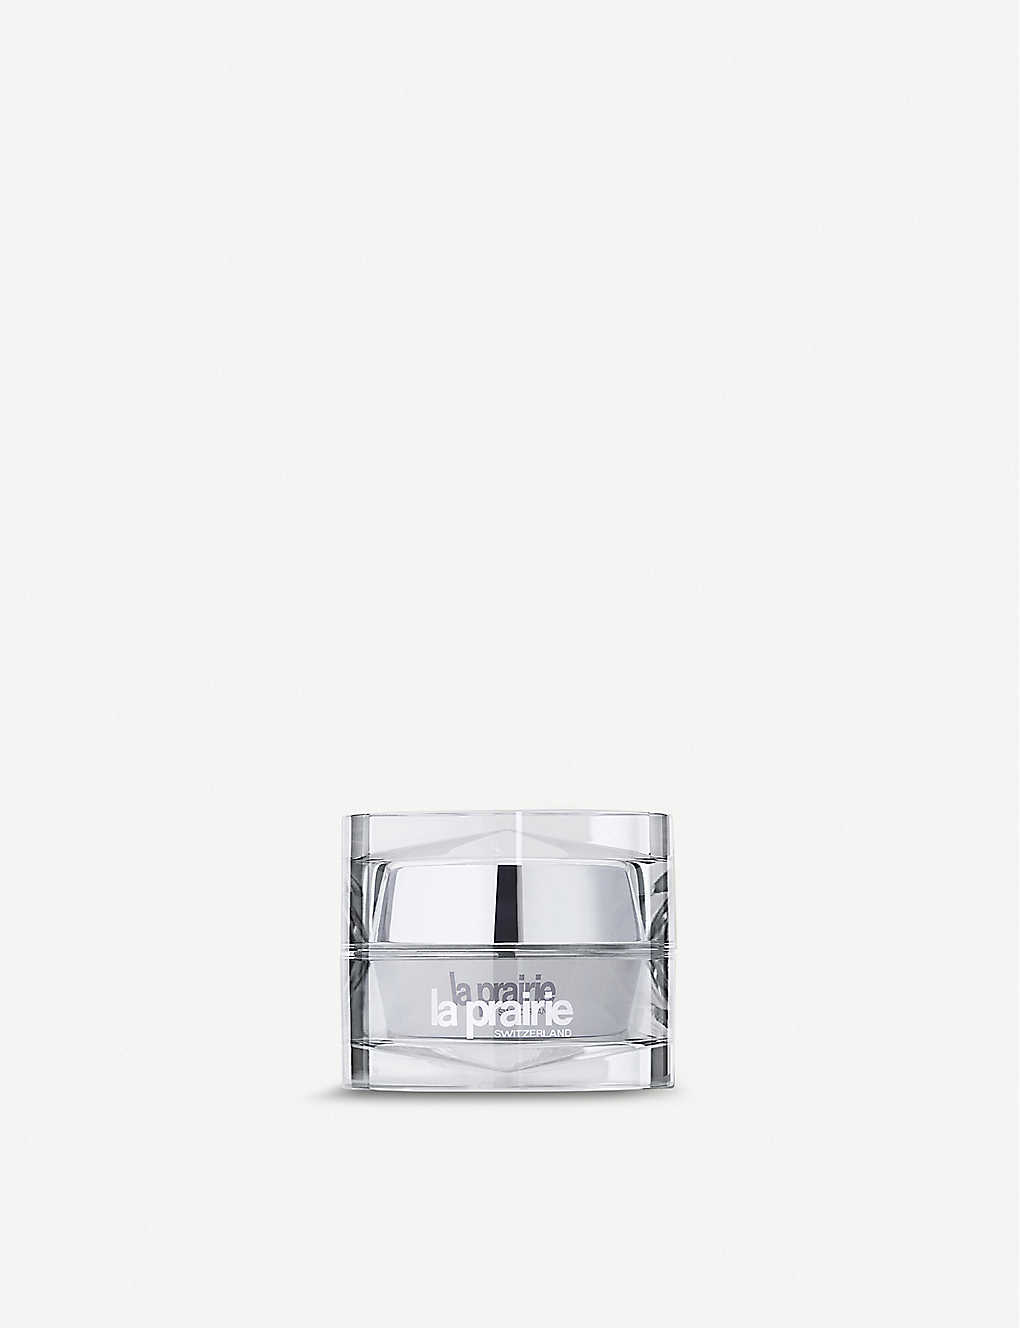 LA PRAIRIE: Cellular Eye Cream Platinum Rare 20ml